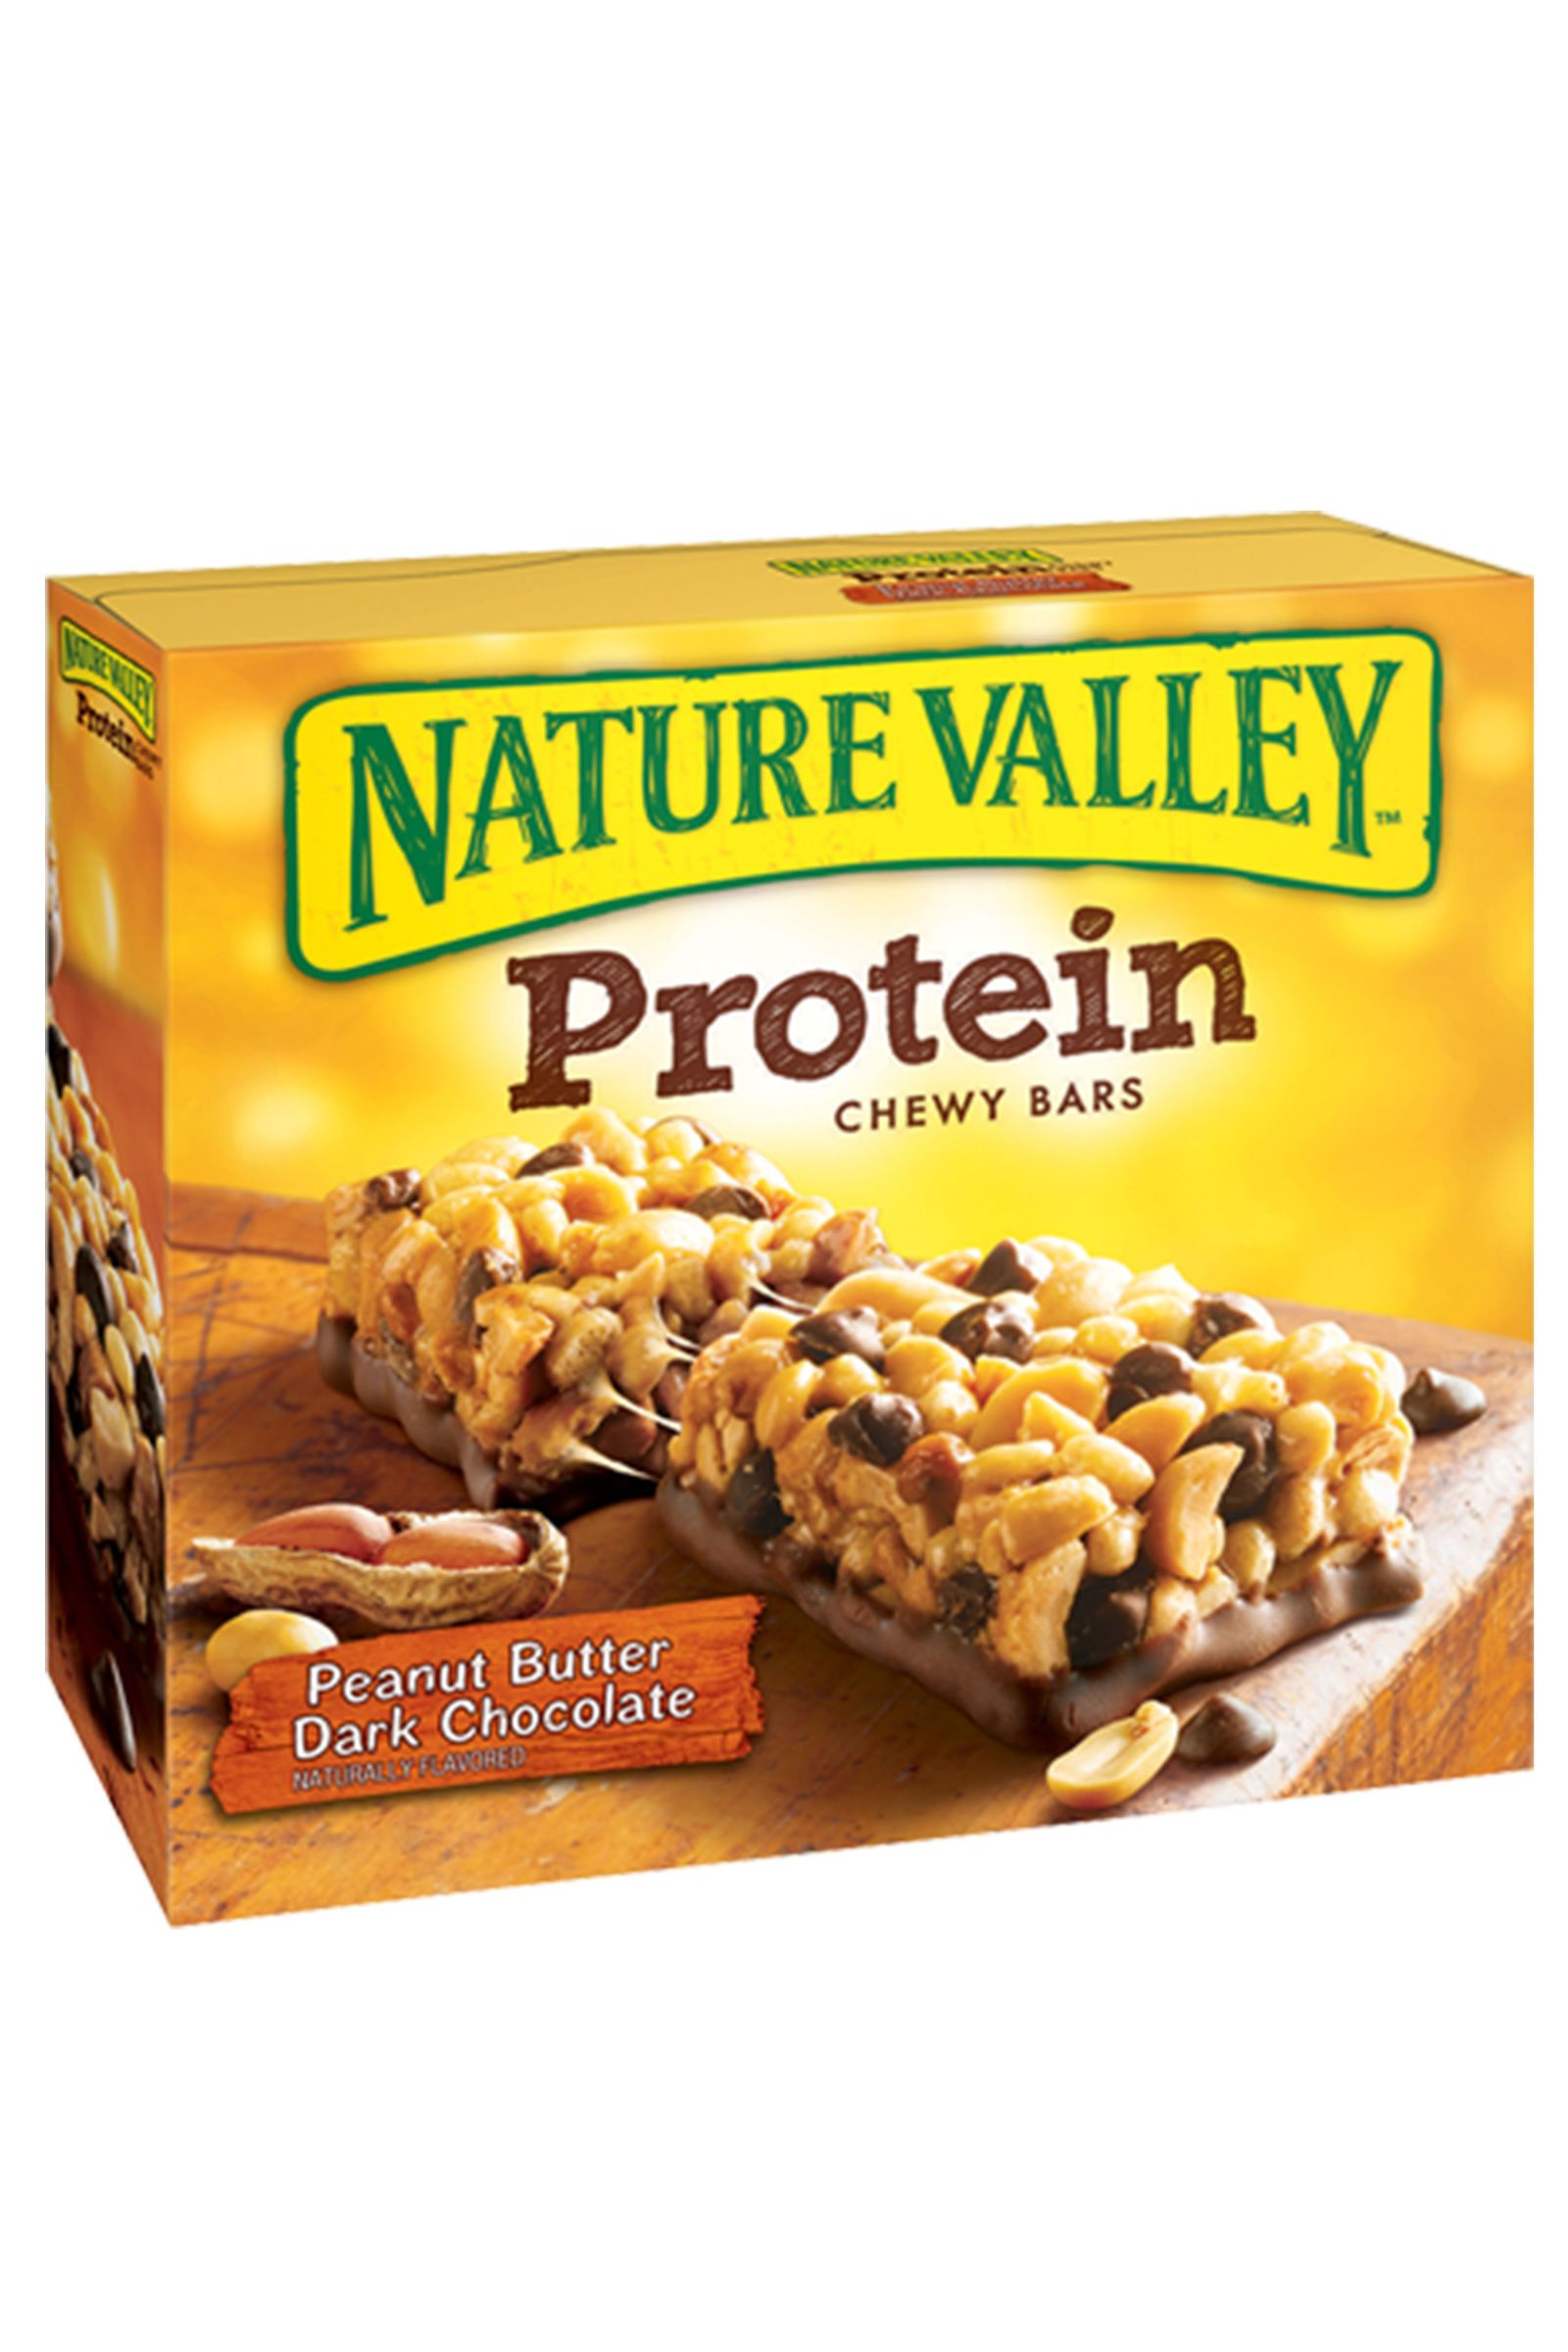 The 25 Best Breakfast Bars To Fuel Busy Mornings Breakfast Bars Healthy Low Calorie Breakfast Nature Valley Chewy Granola Bars